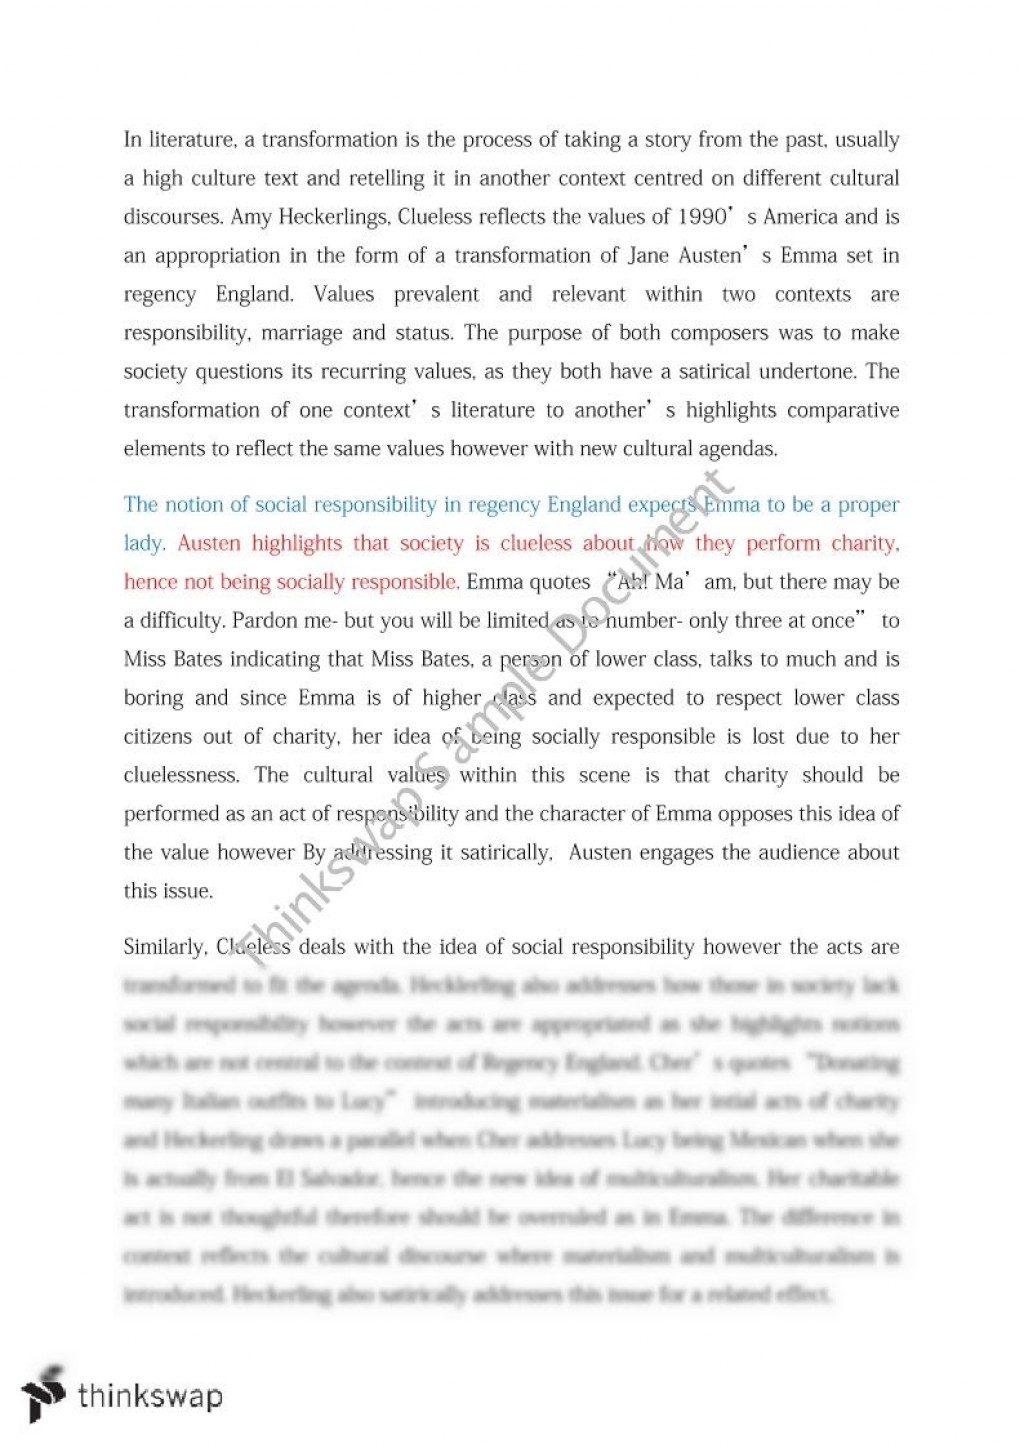 007 Comparative Essays Essay Example 20085 Emma V Clueless Fadded11 Sensational Sample Of On Poems Vce The Crucible And Year Wonders Large